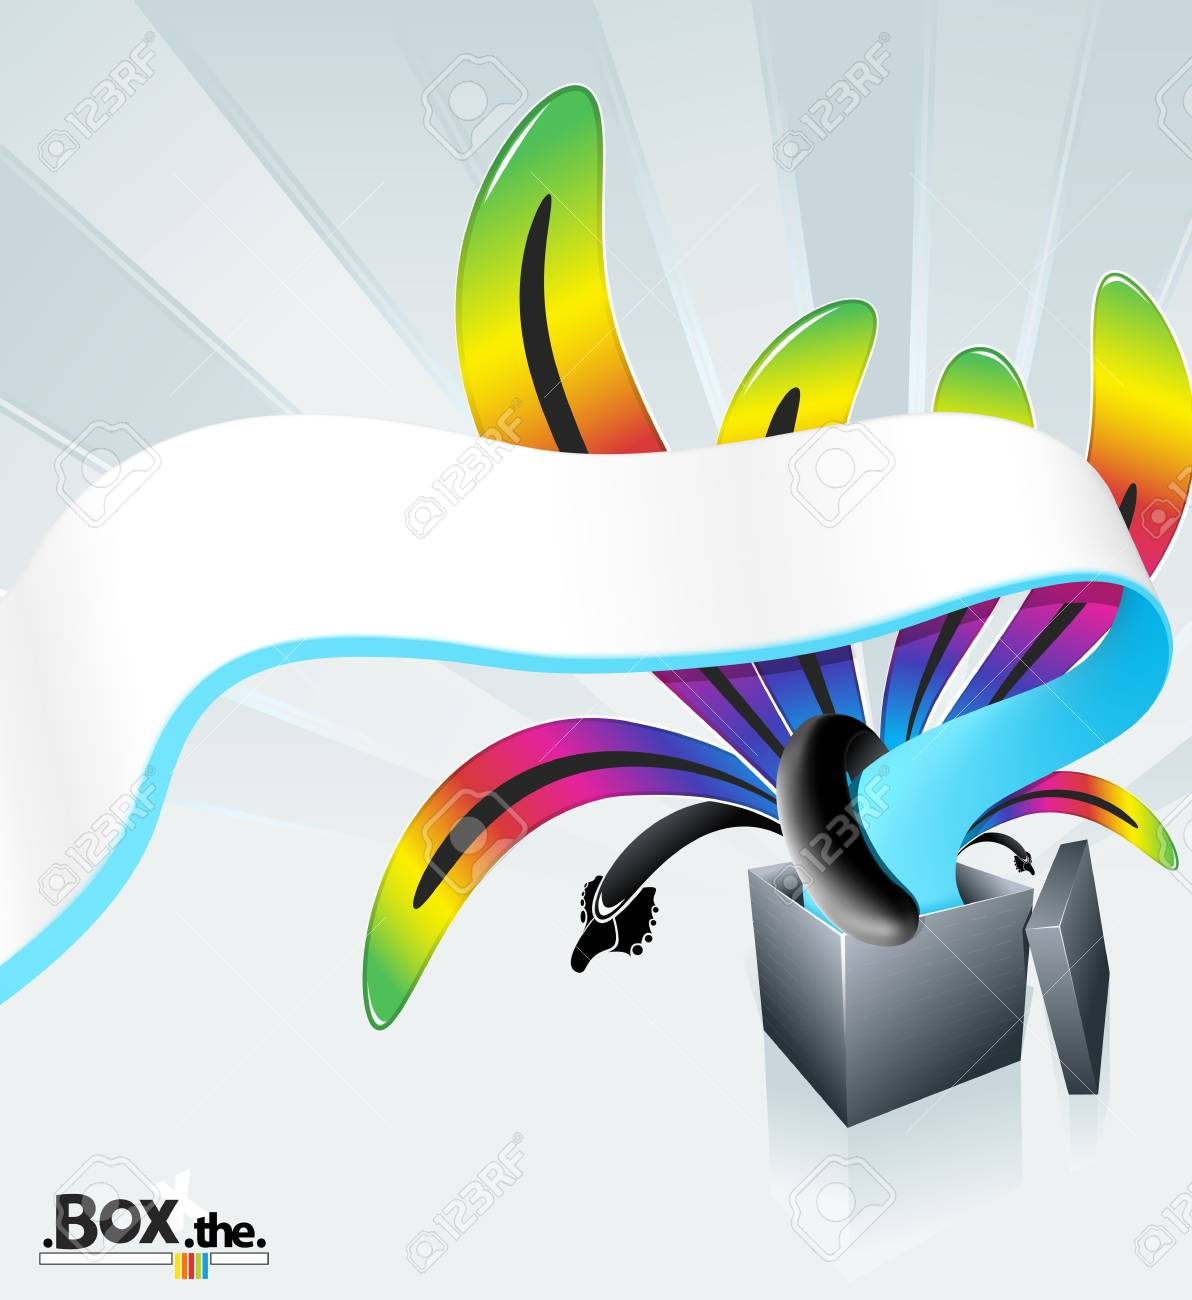 illustration of a beautiful magic box exploding into flows of colorful stripes. Stock Photo - 6953270